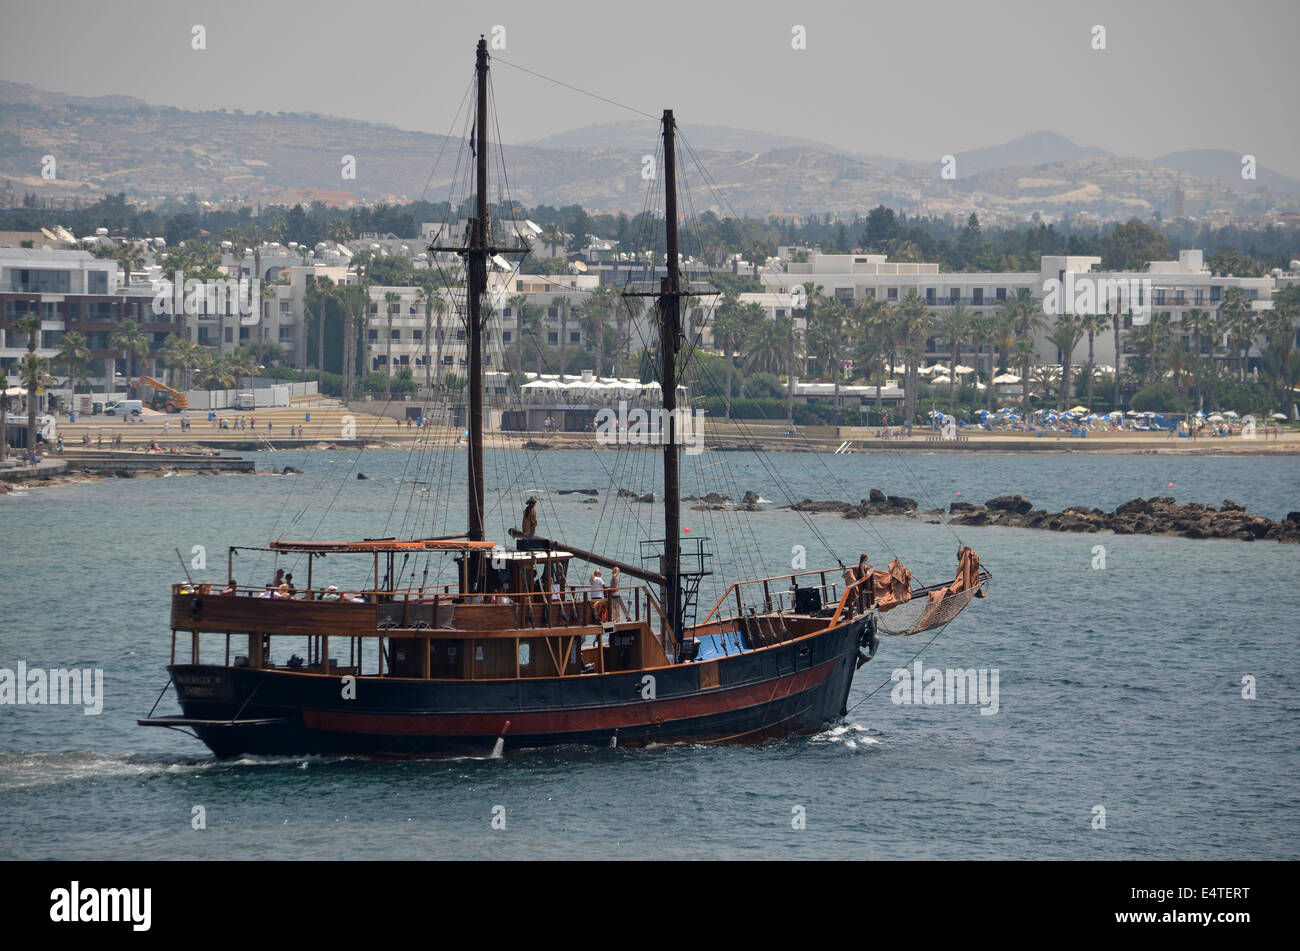 The famous 'Pirate ship of Paphos Habour' is our very own Jolly Roger, taking its name from the pirate ship - Stock Image